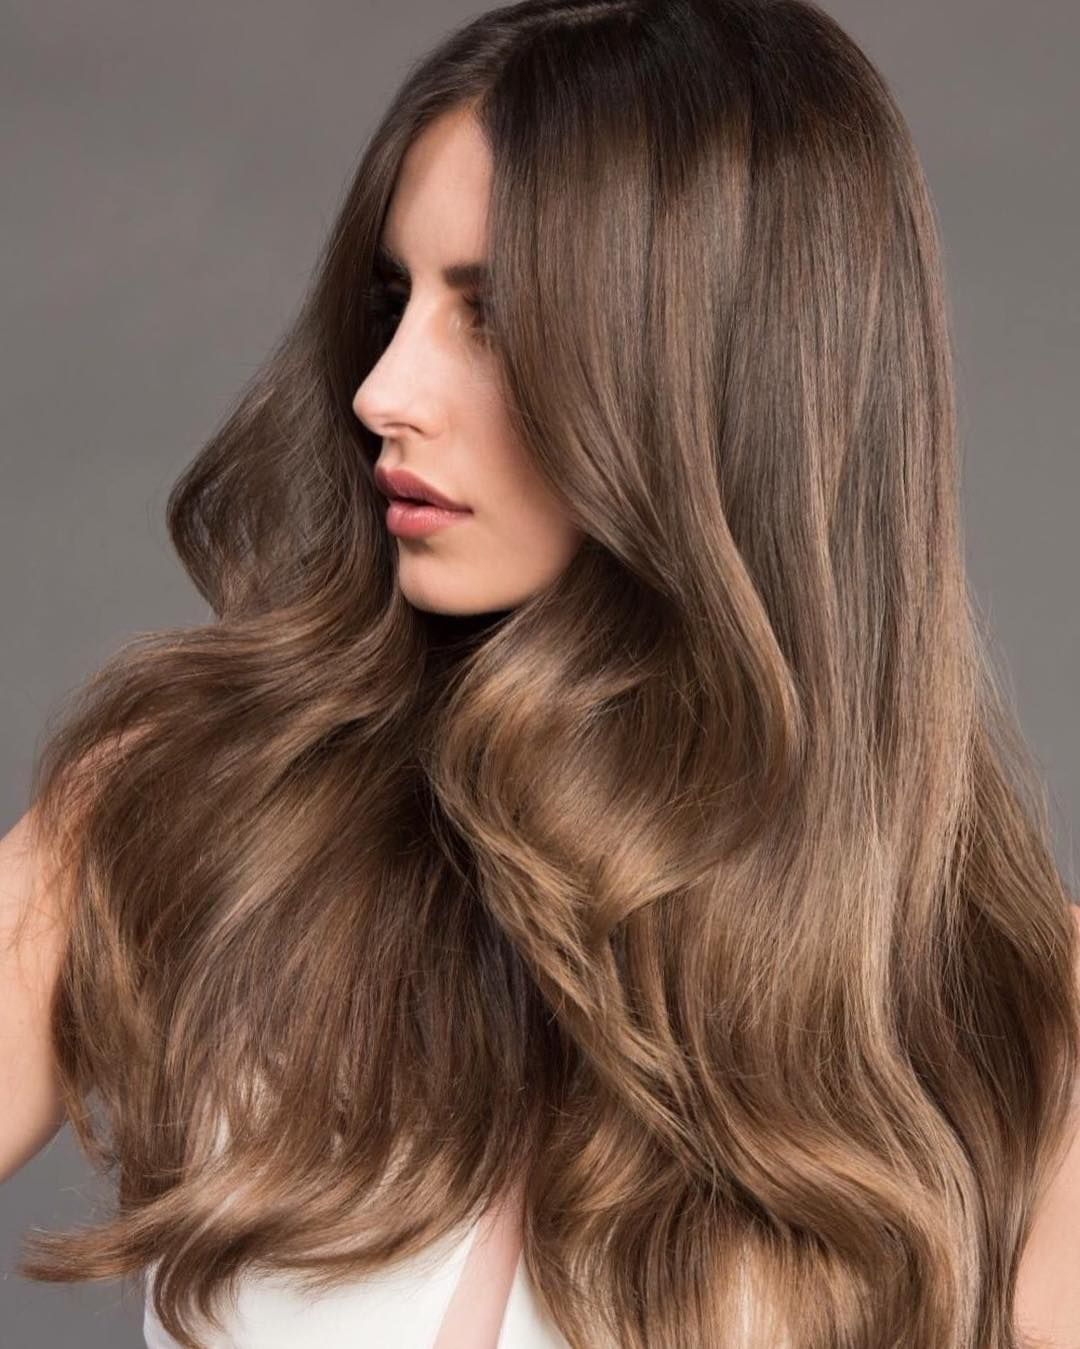 50 Delightful Dark And Light Golden Brown Hair Color Ideas With